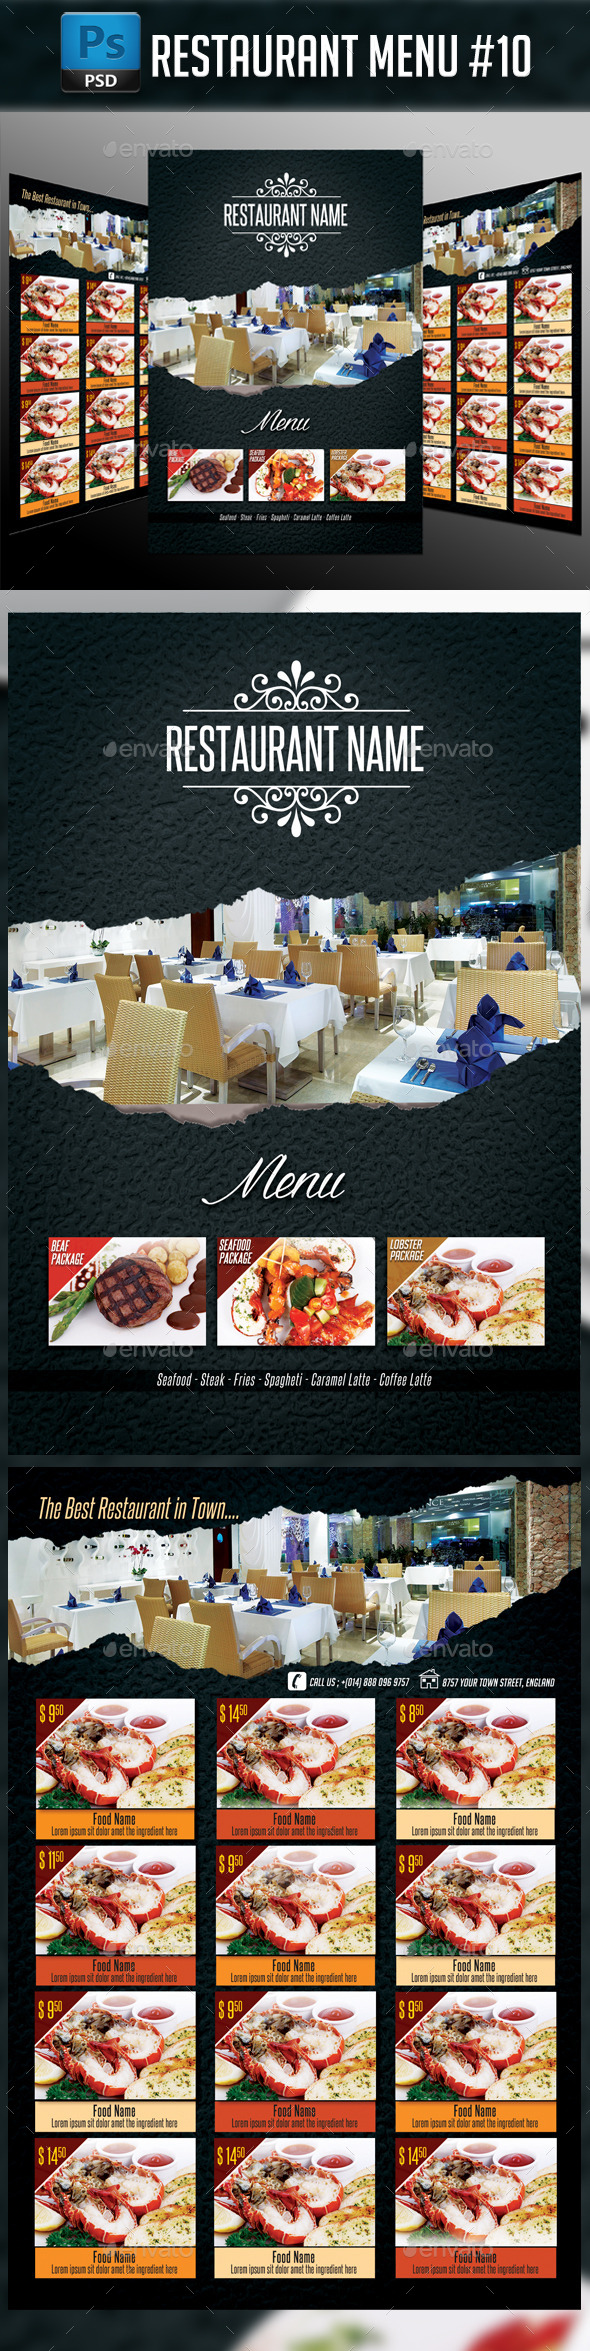 Restaurant Menu #10 - Food Menus Print Templates